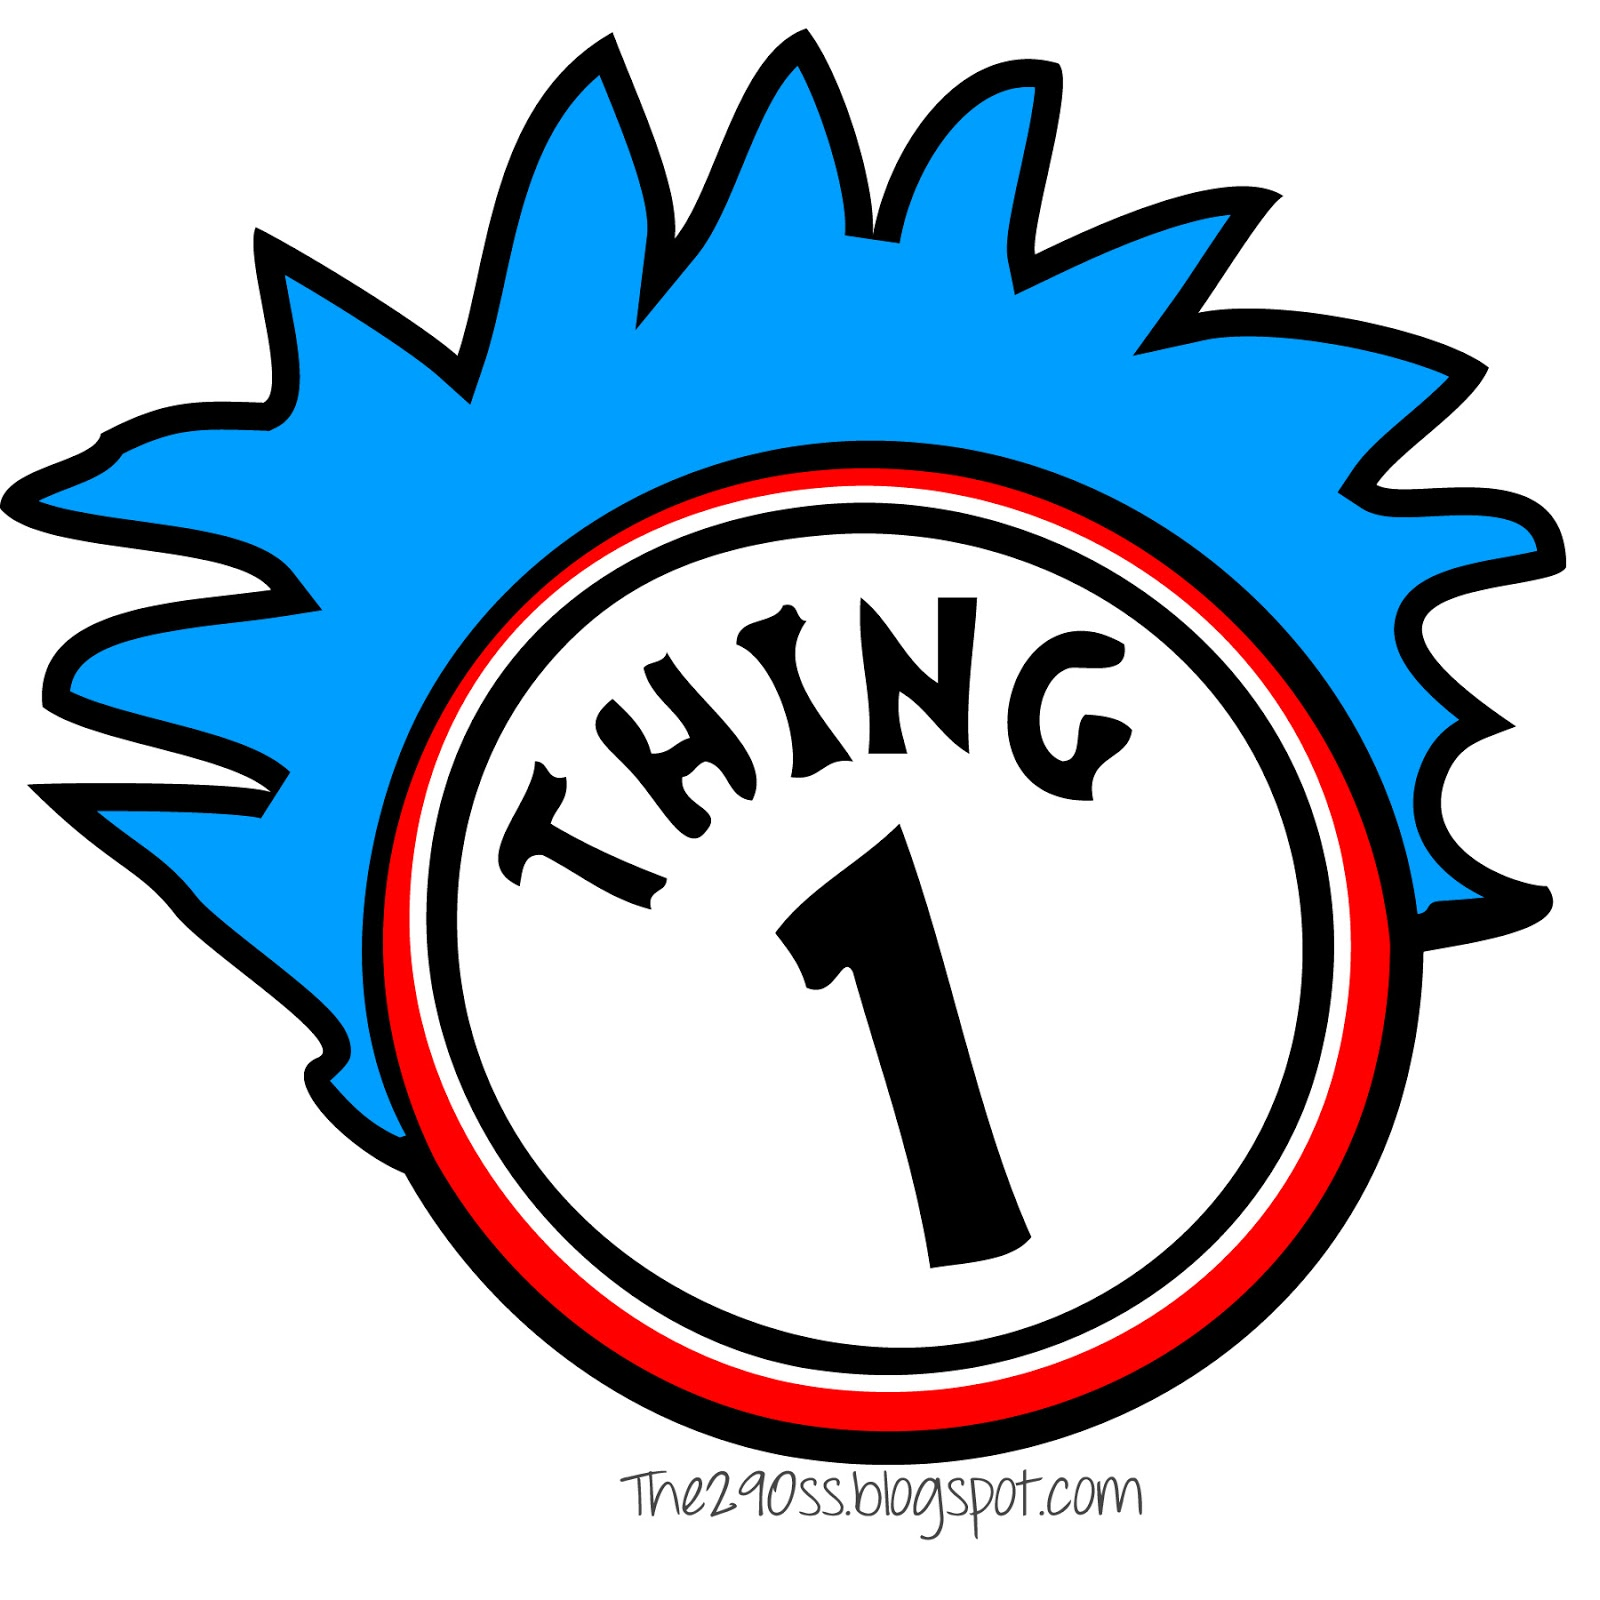 photograph relating to Thing 2 Logo Printable named Dr Seuss Coloring Web pages Factor 1 And Factor 2 Clipart Panda